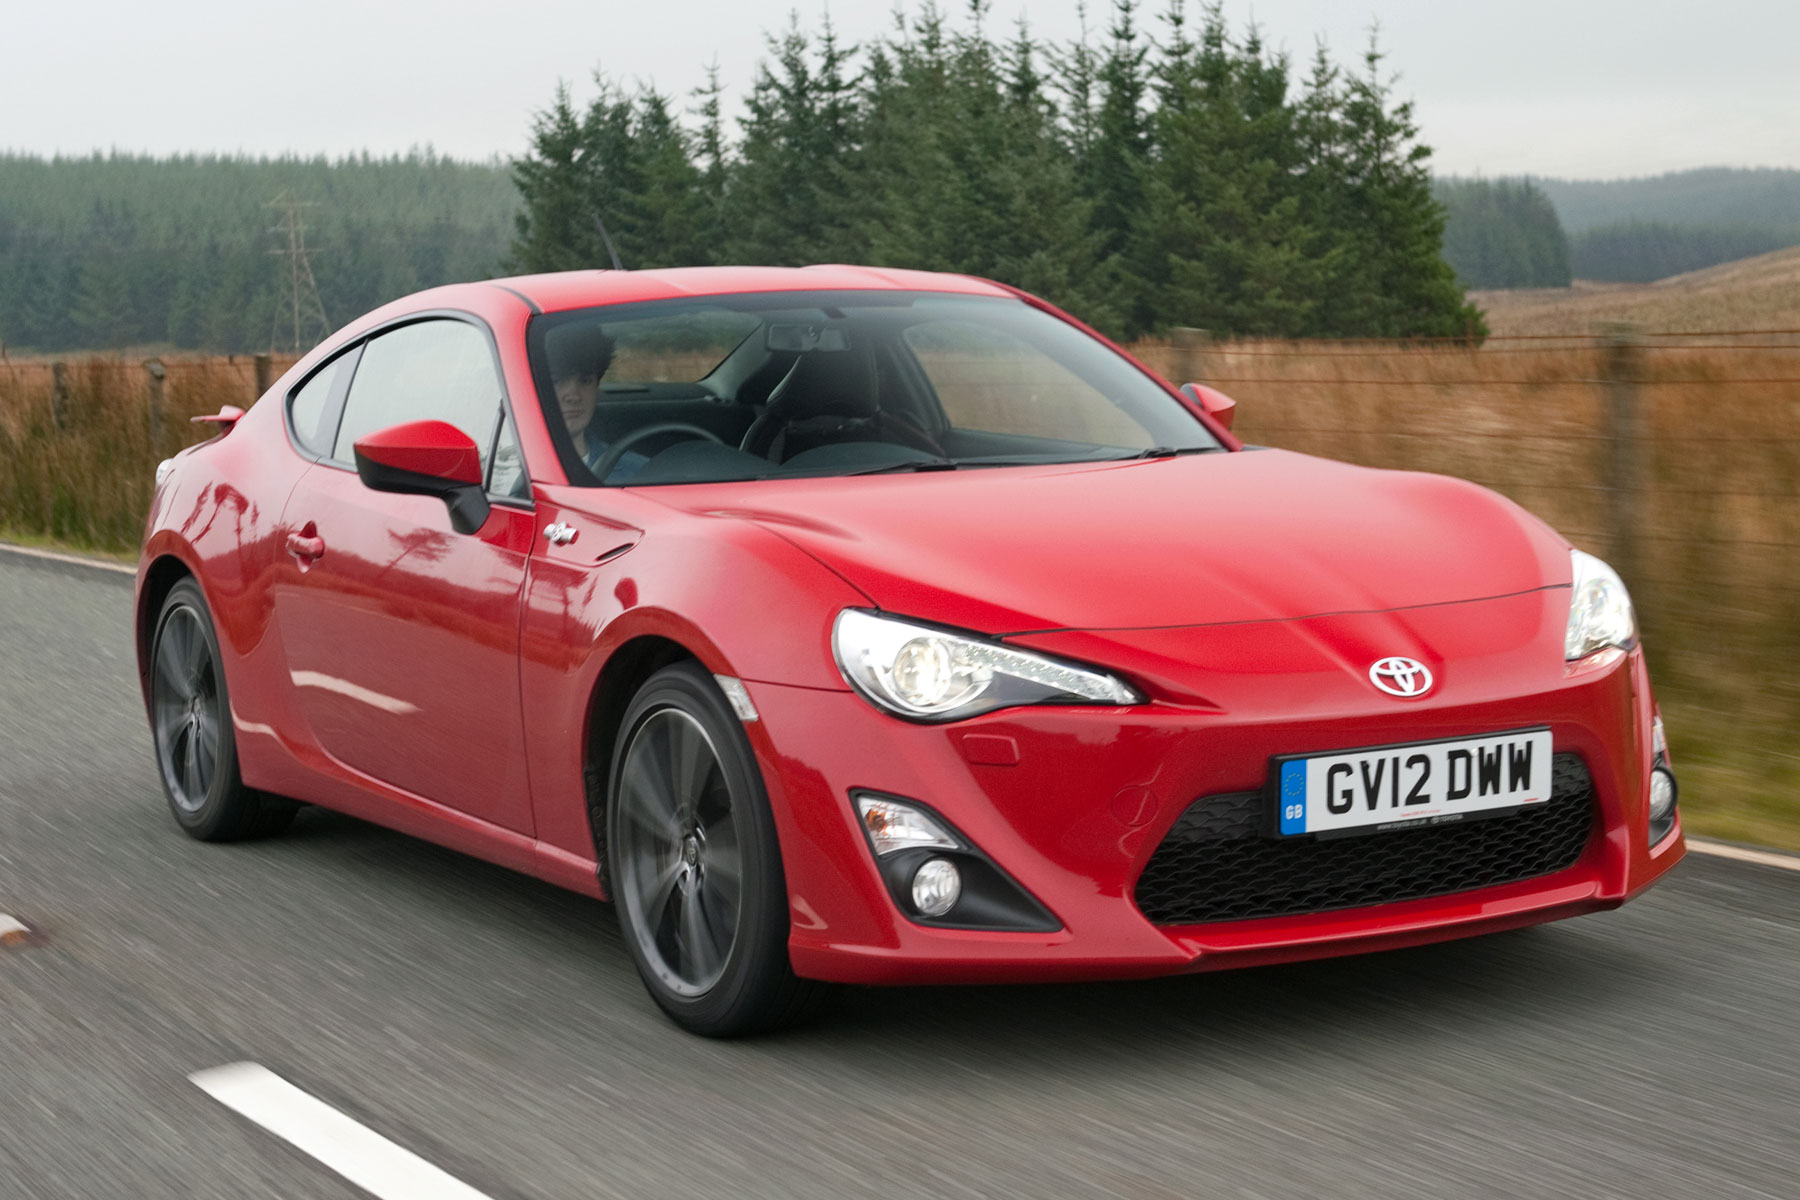 Toyota GT86: on the road